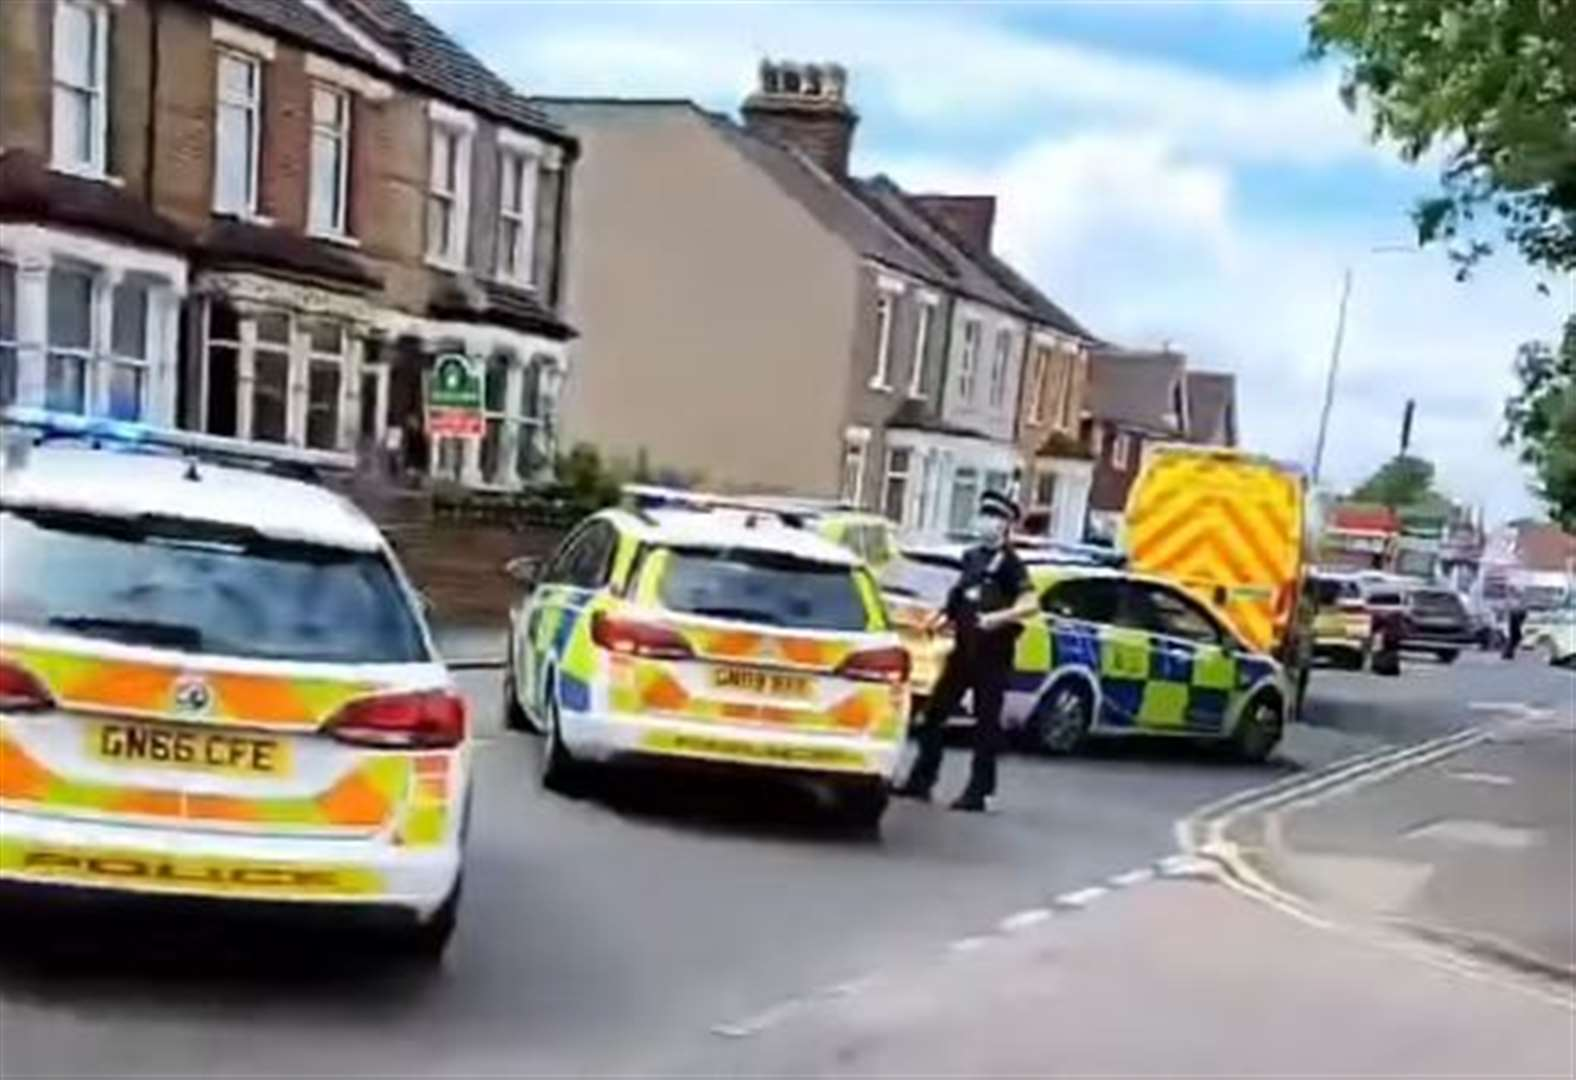 Armed police spotted near pub